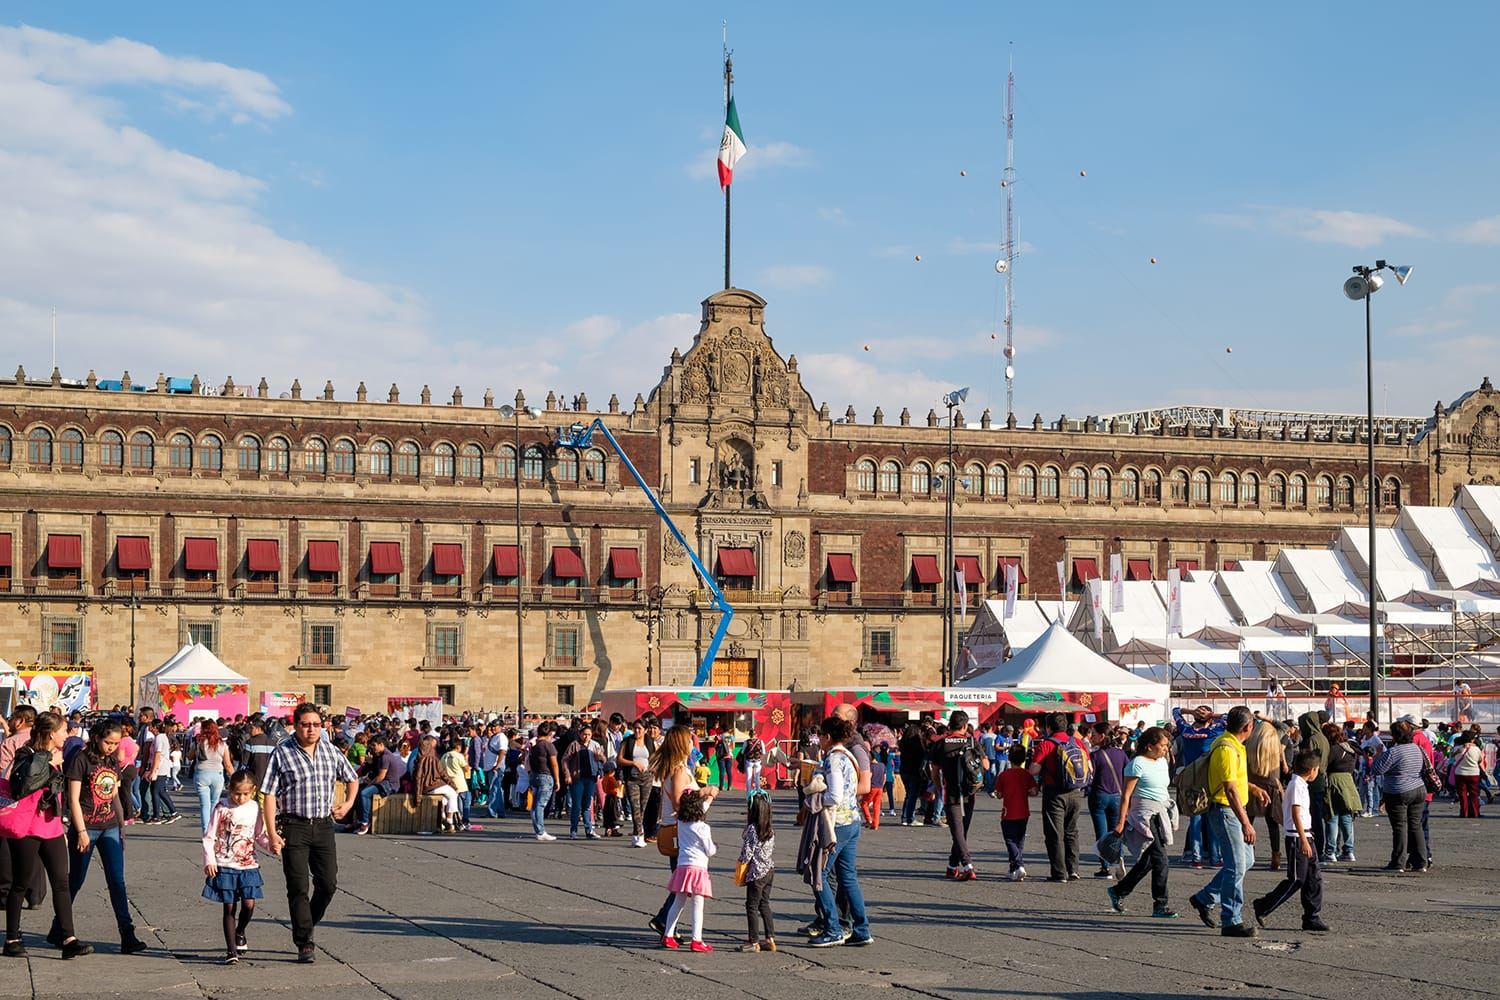 People at El Zocalo in Mexico City with the National Palace